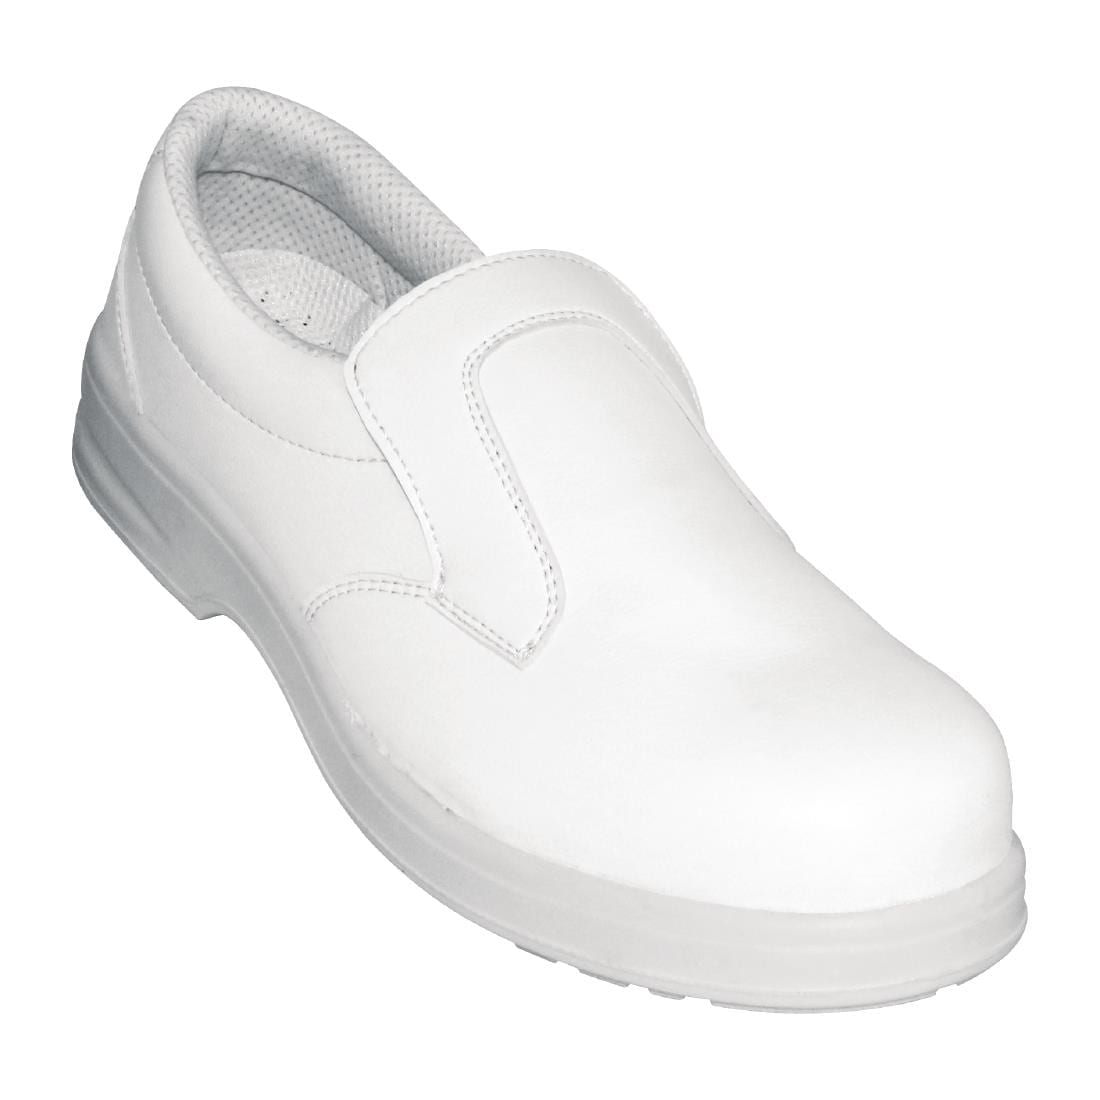 Lites Unisex Safety Slip On White Size 43